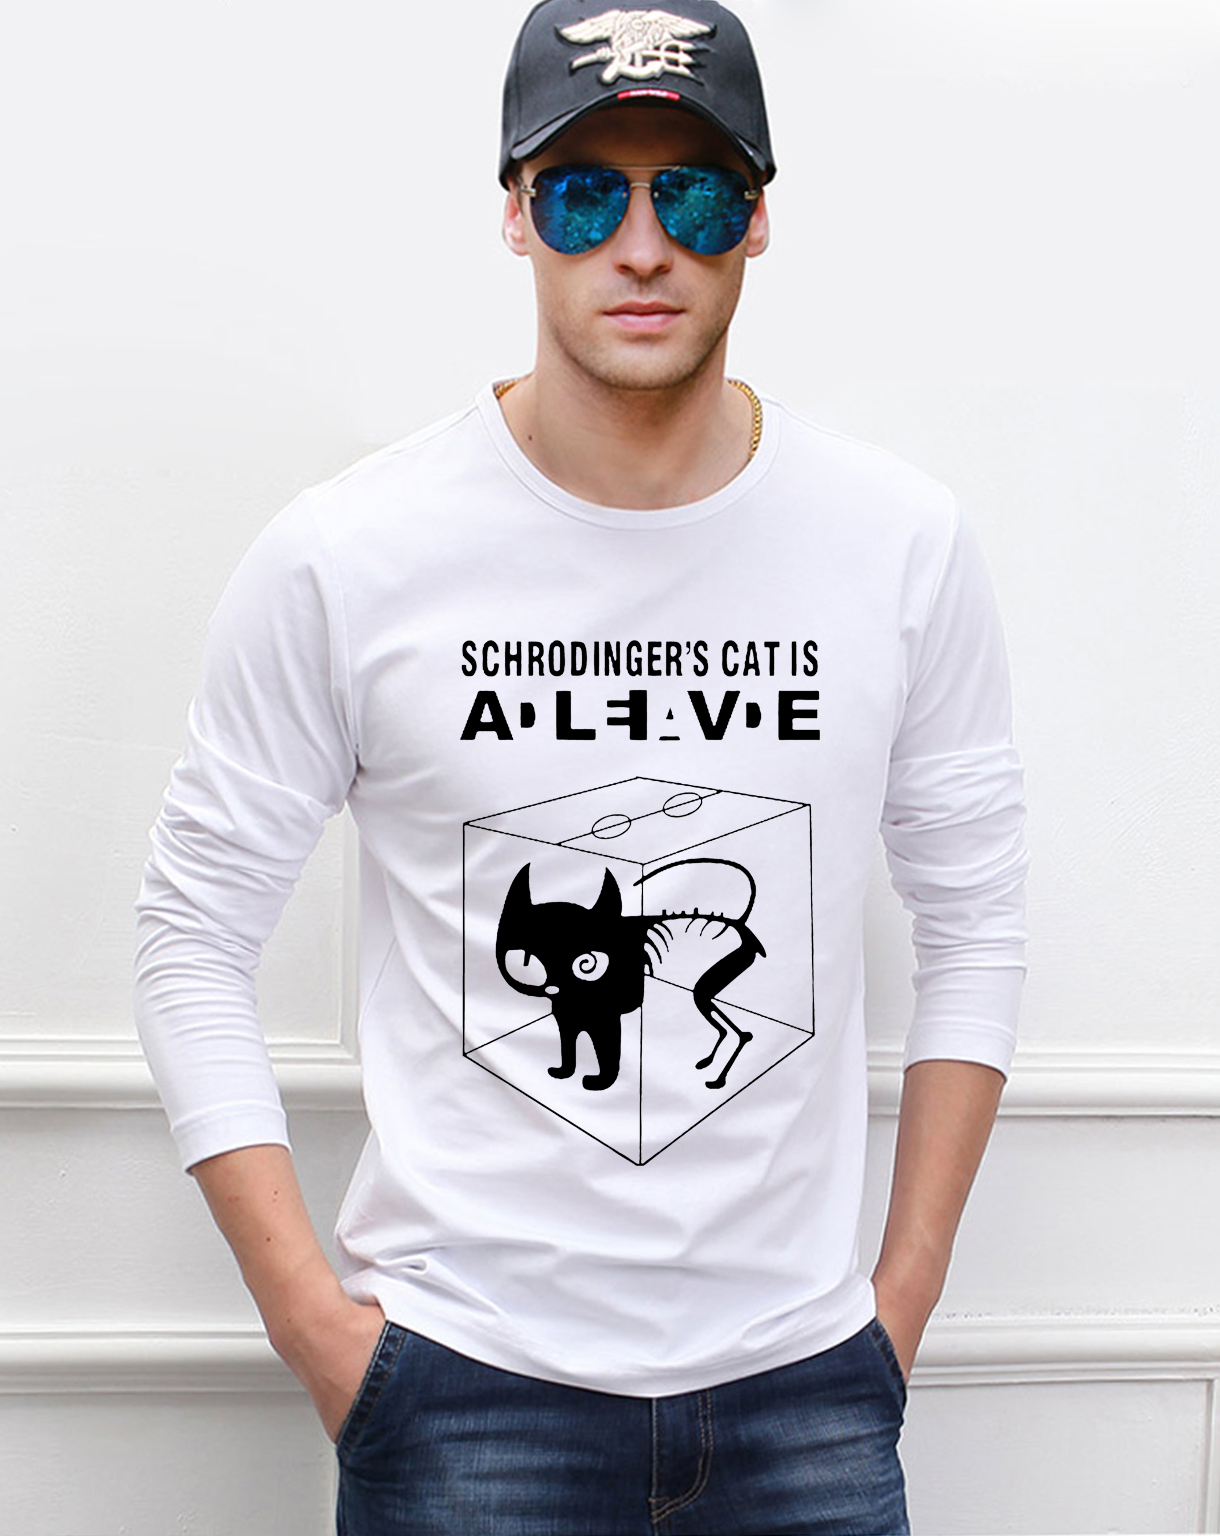 The Big Bang Theory Schrodinger's Cat men's long sleeve o-neck t-shirts 2019 new spring 100% cotton casual cartoon man t shirt